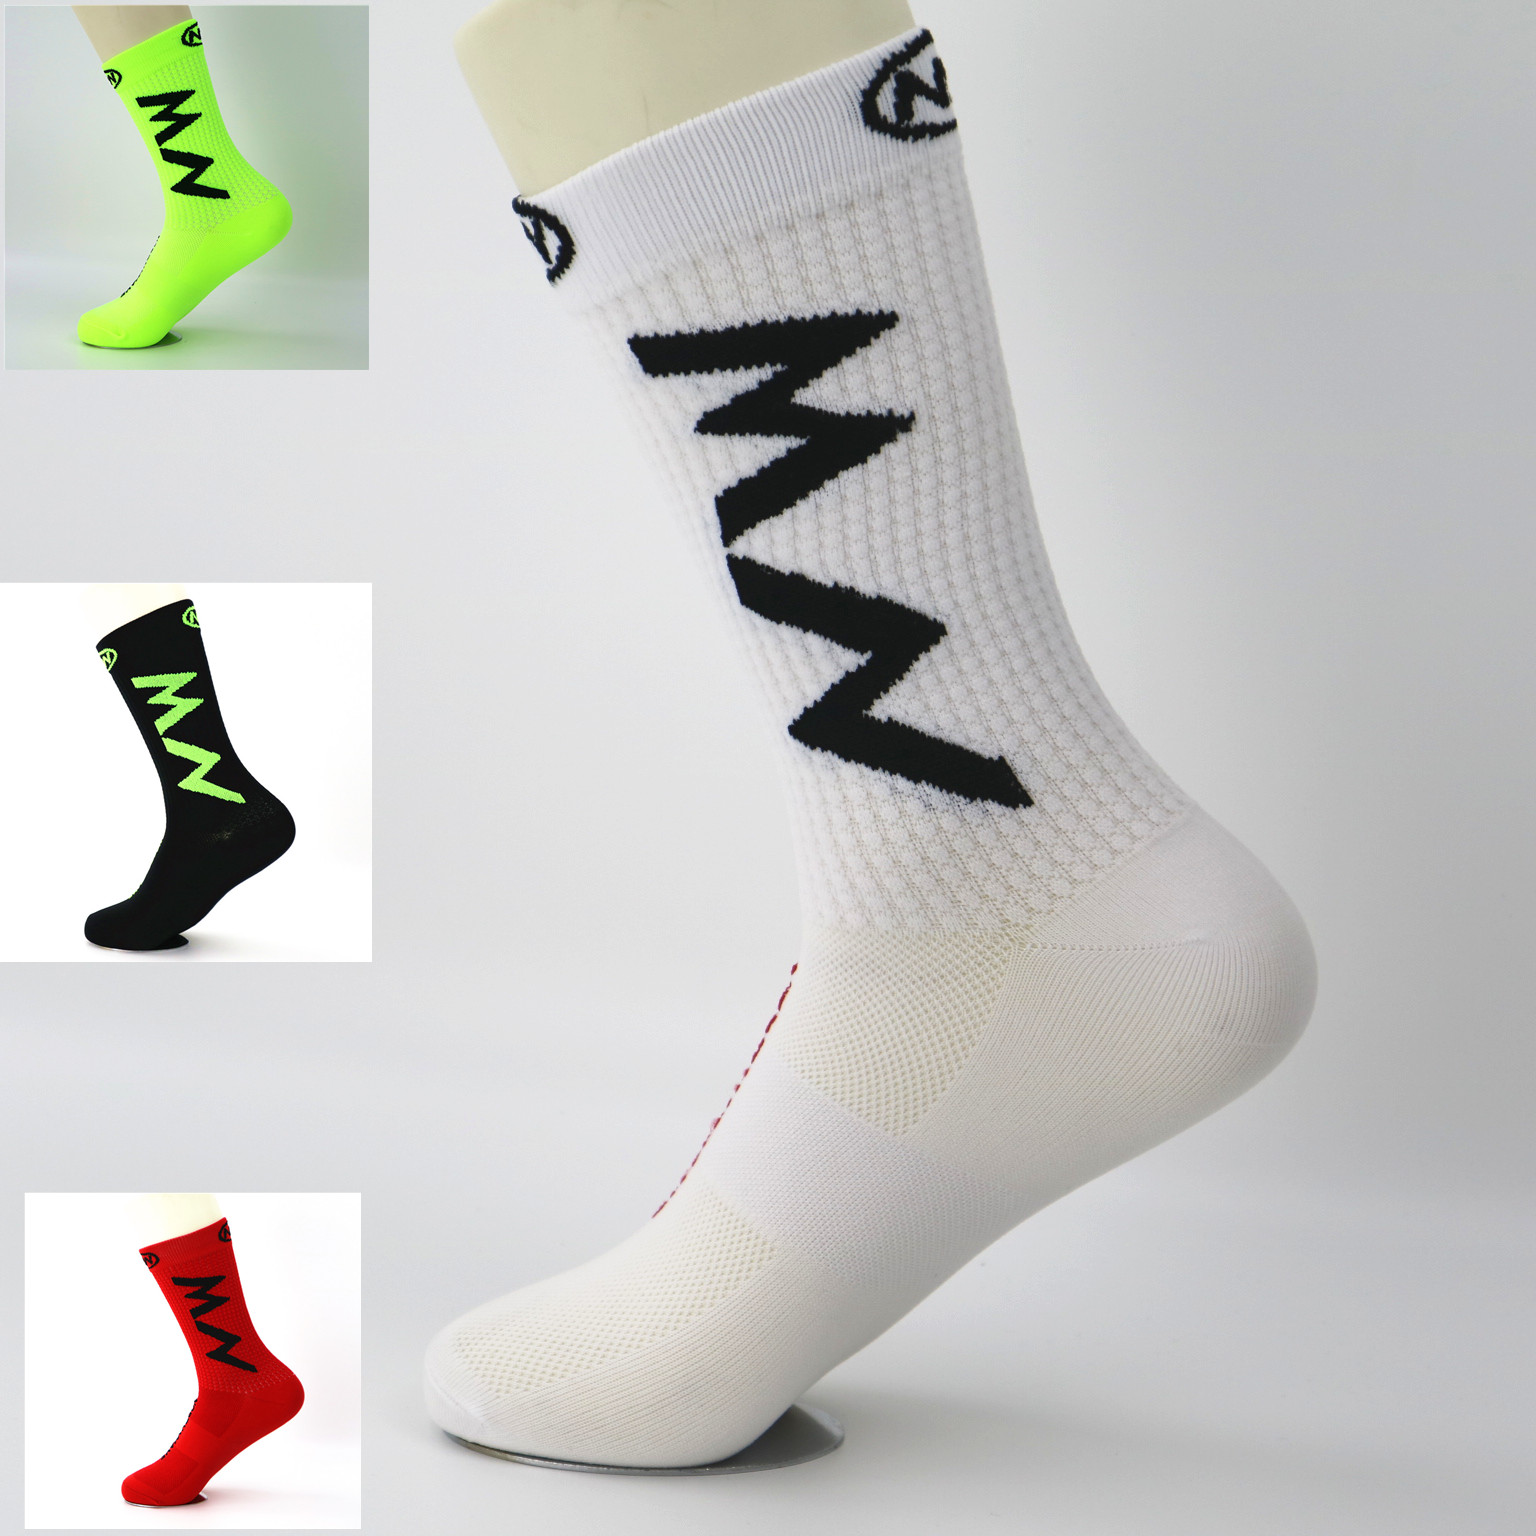 NW Sport Cycling Riding Basketball Socks Men Women Running Climbing Camping Hiking Socks Breathable High Quality